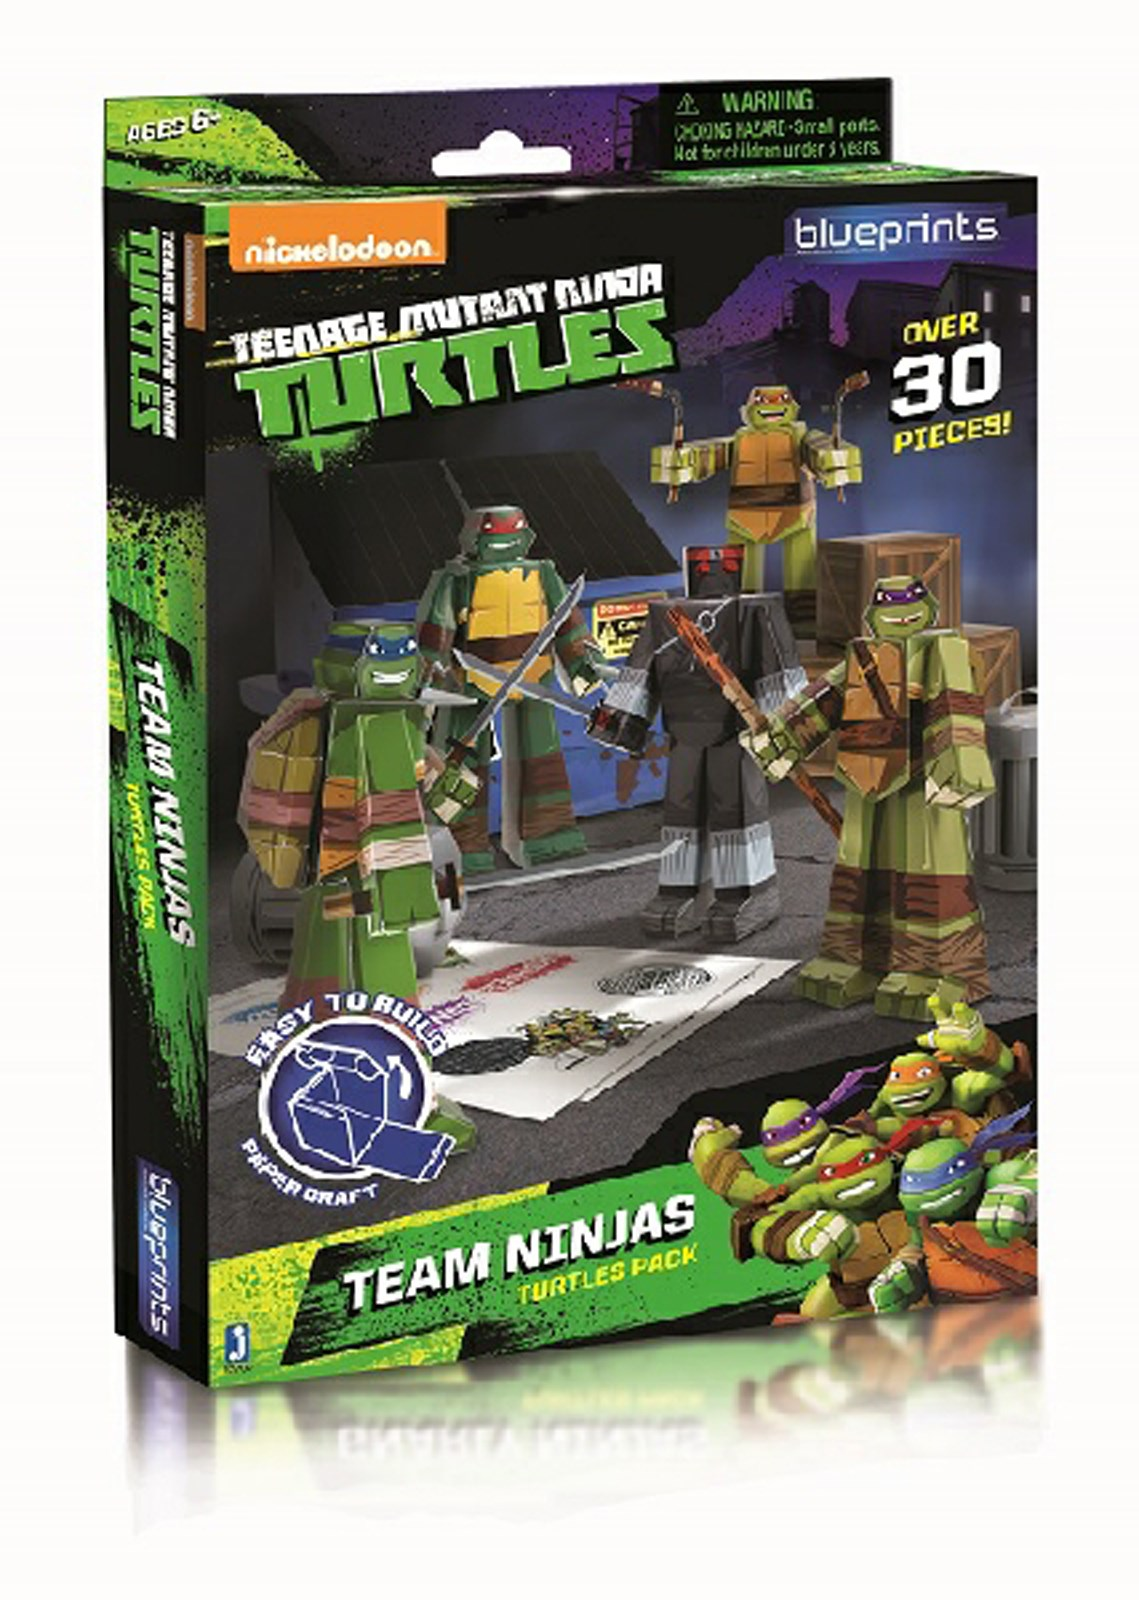 Image of Nickelodeon Teenage Mutant Ninja Turtles Paper Craft - Team Ninjas Turtle Pack